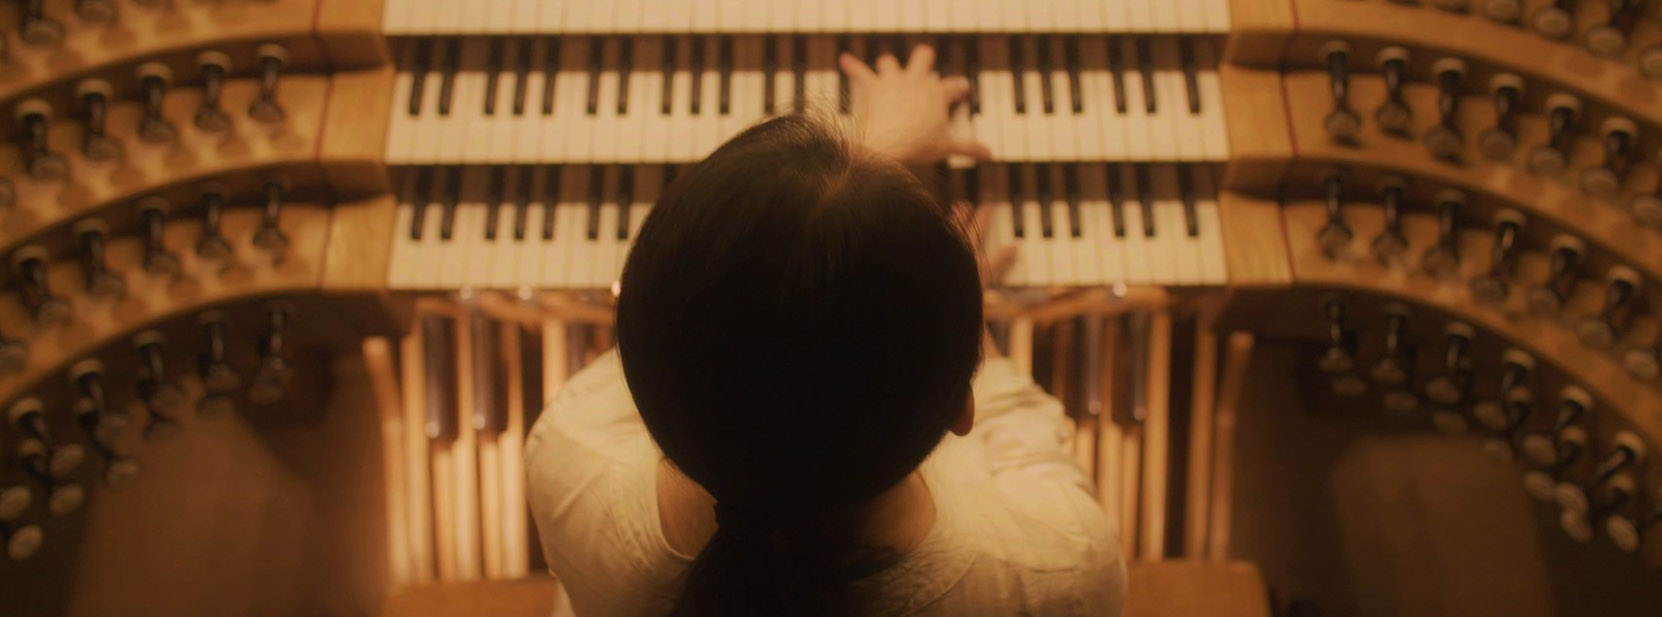 view of back of woman playing pipe organ